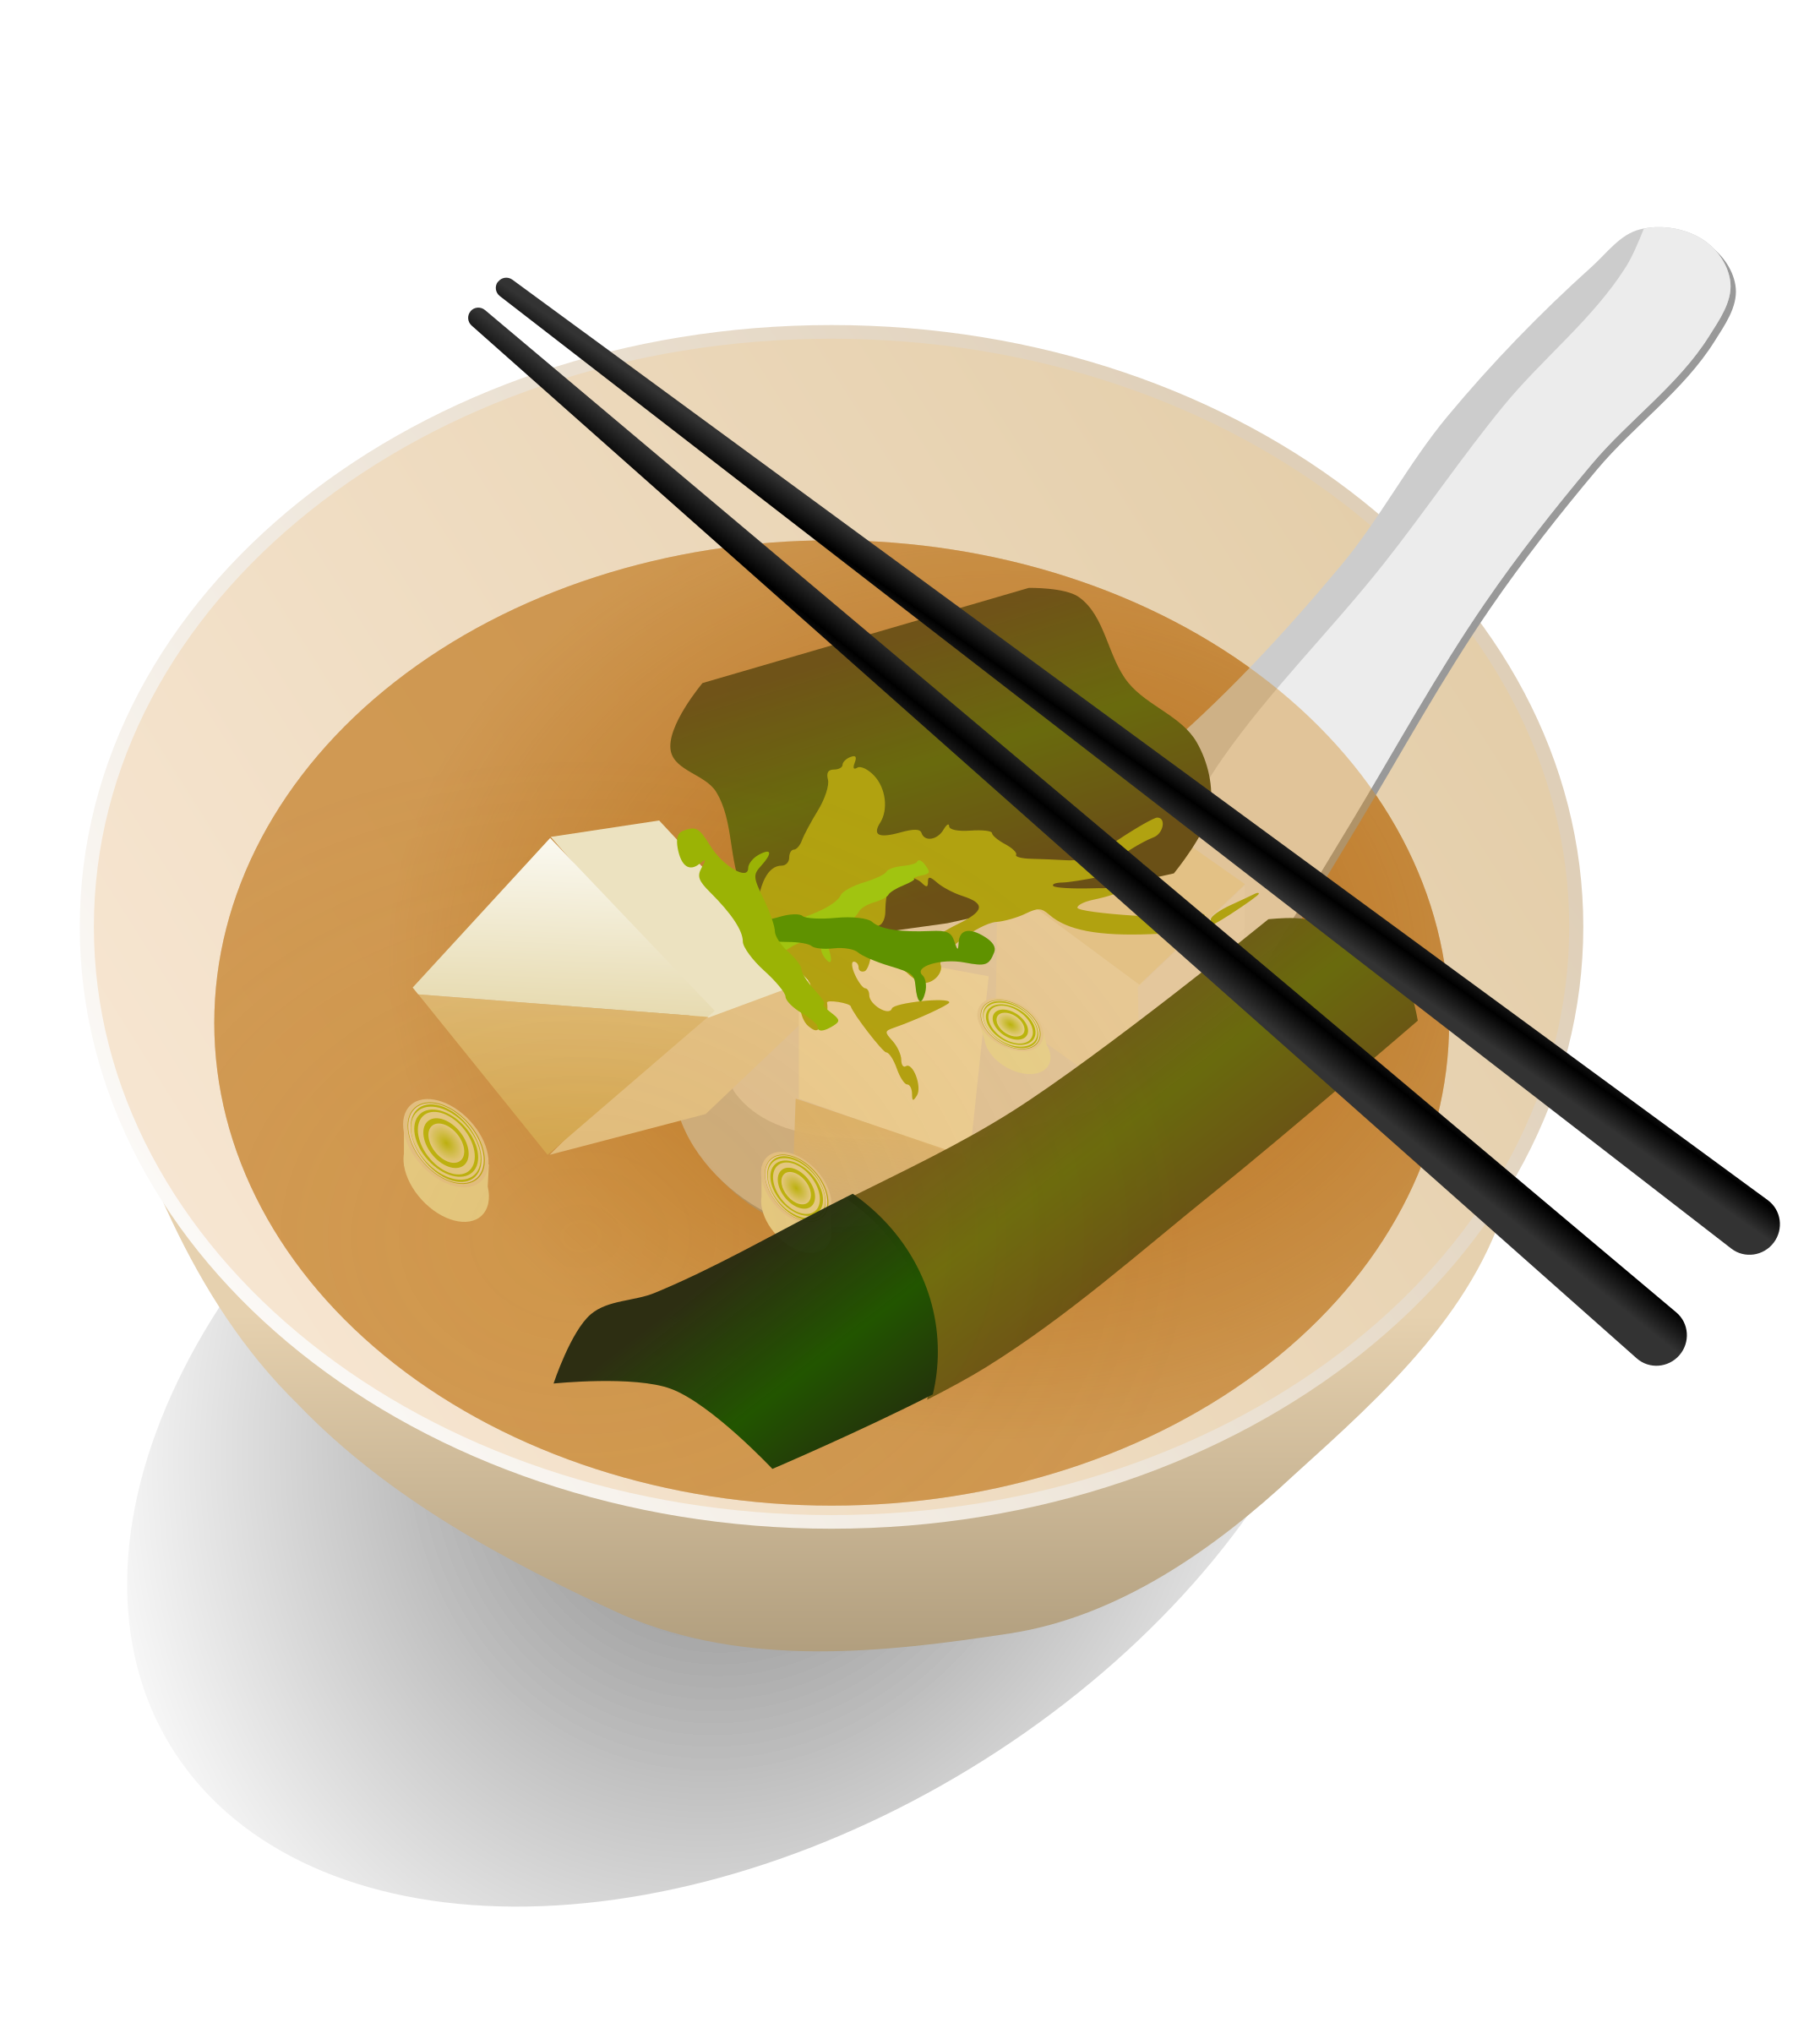 Miso Soup by gnokii